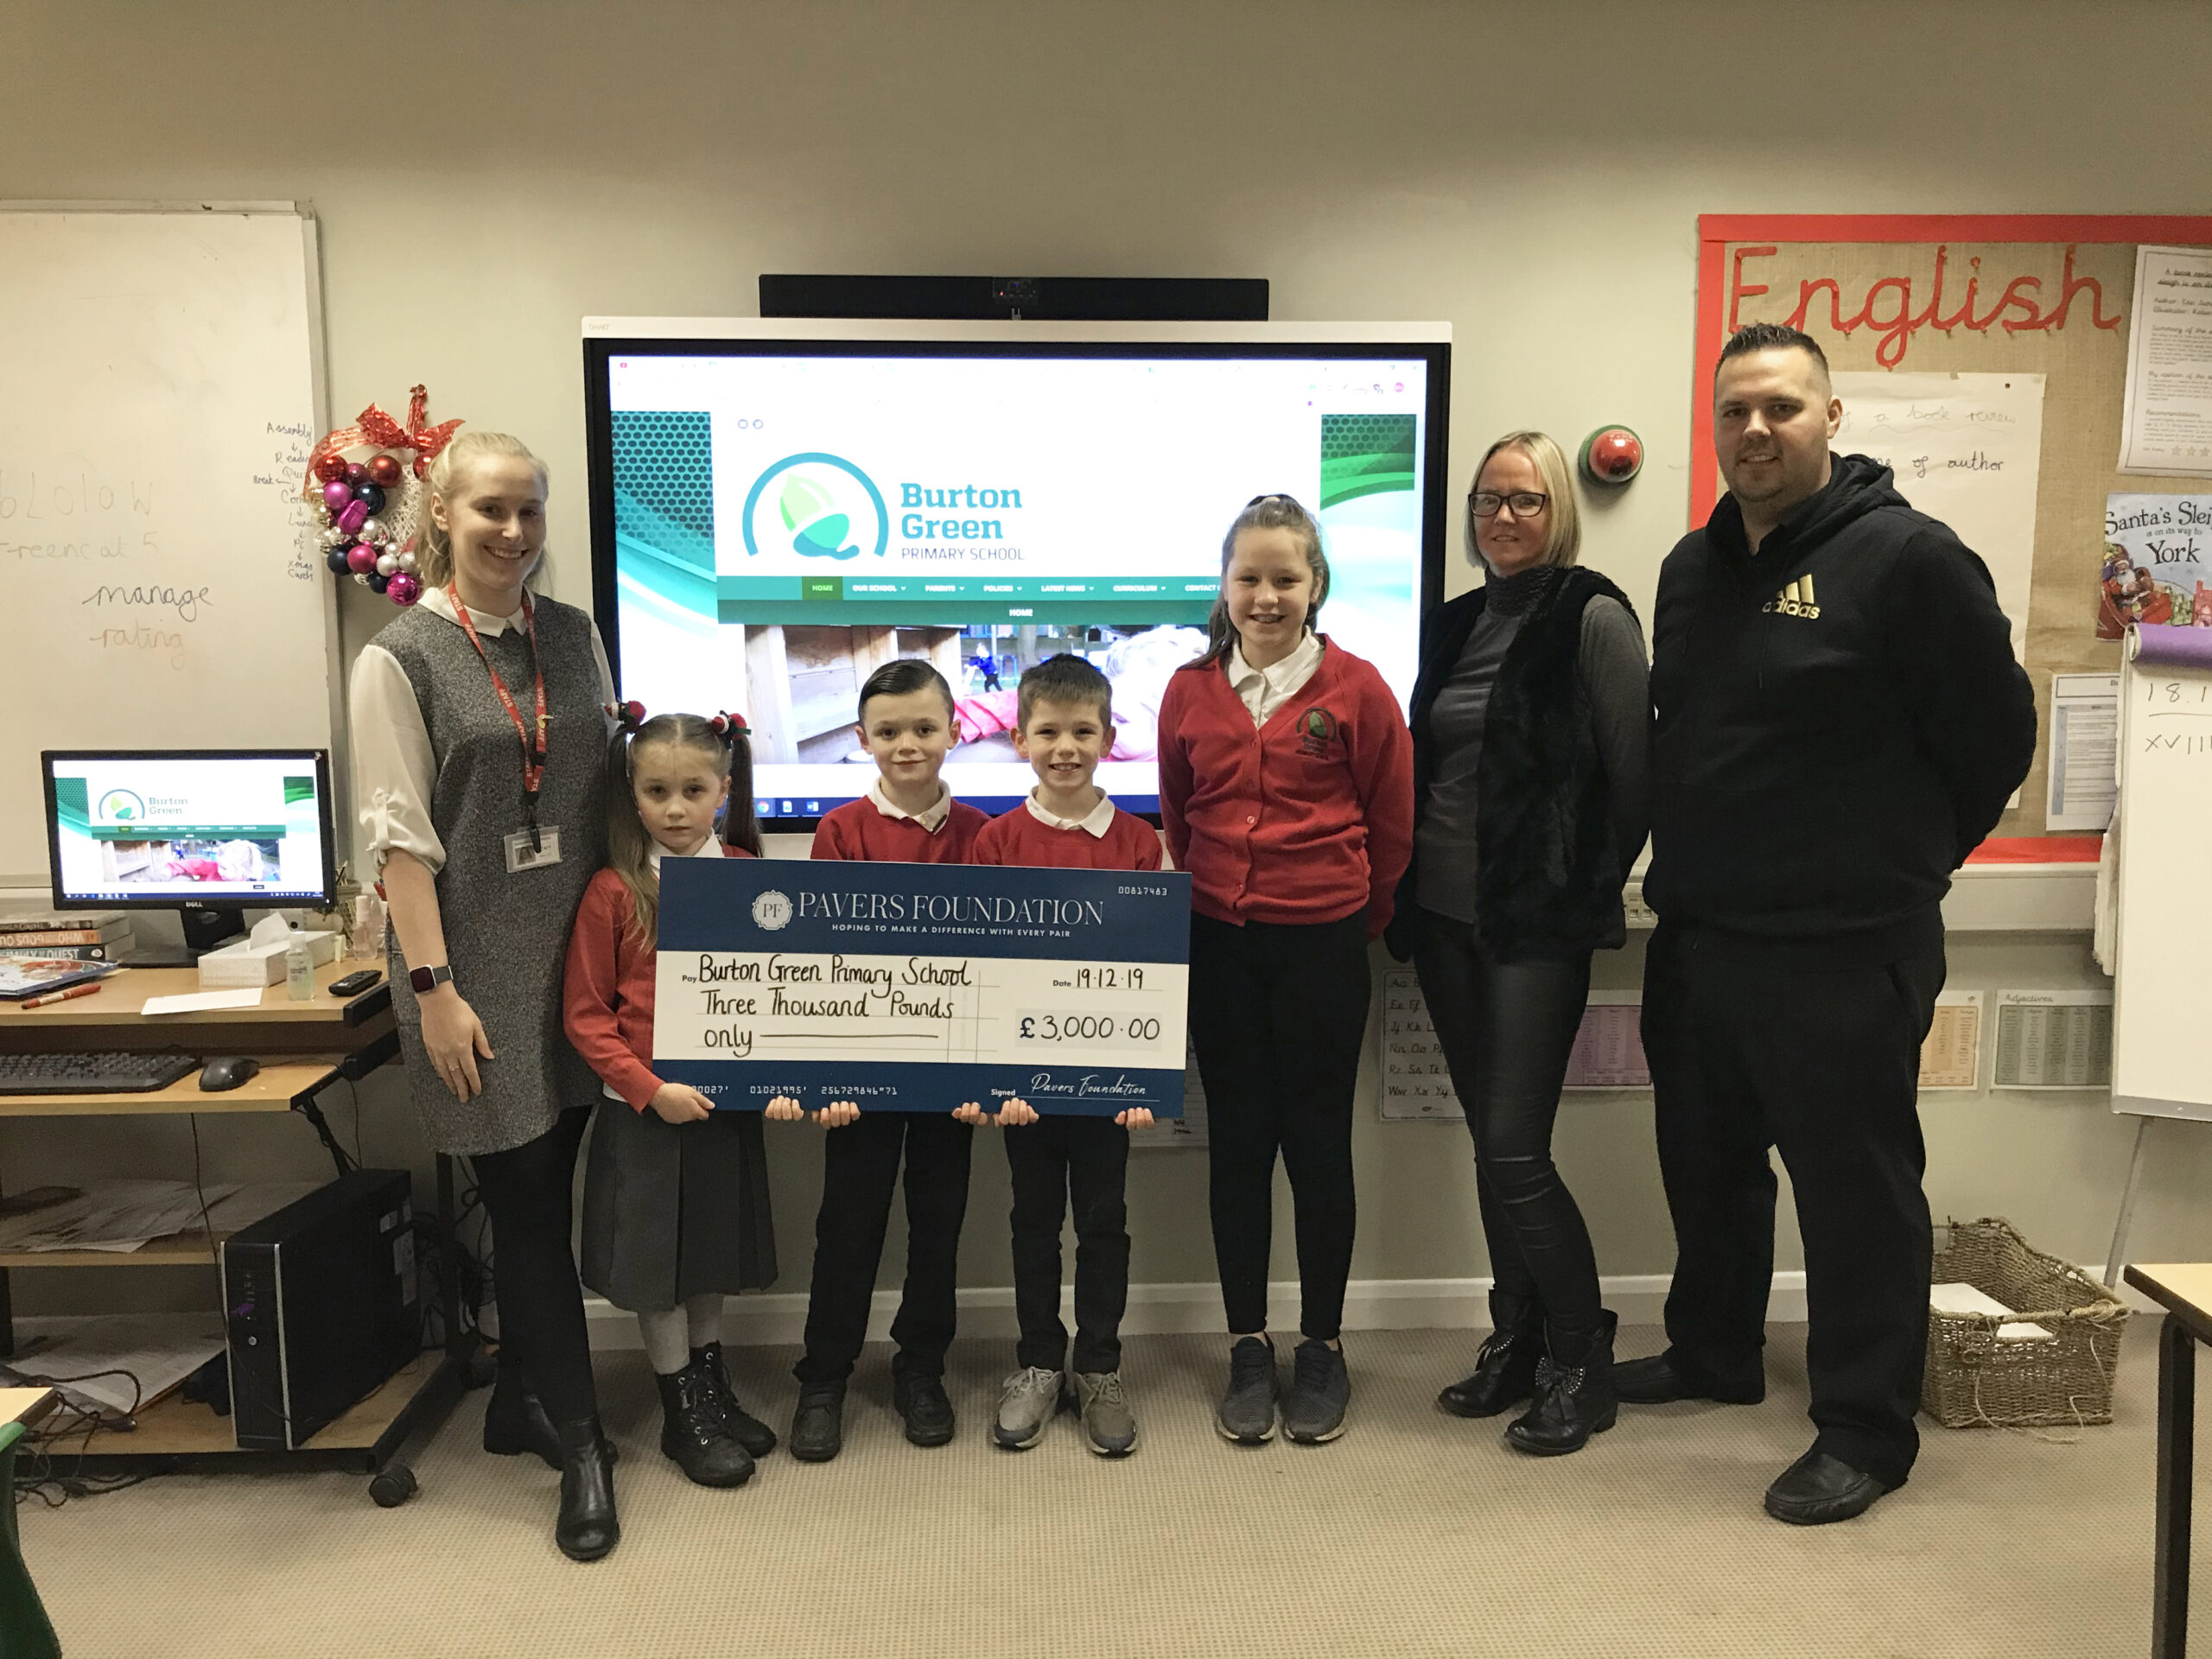 New Interactive Board for Burton Green Primary School with £3,000 donation